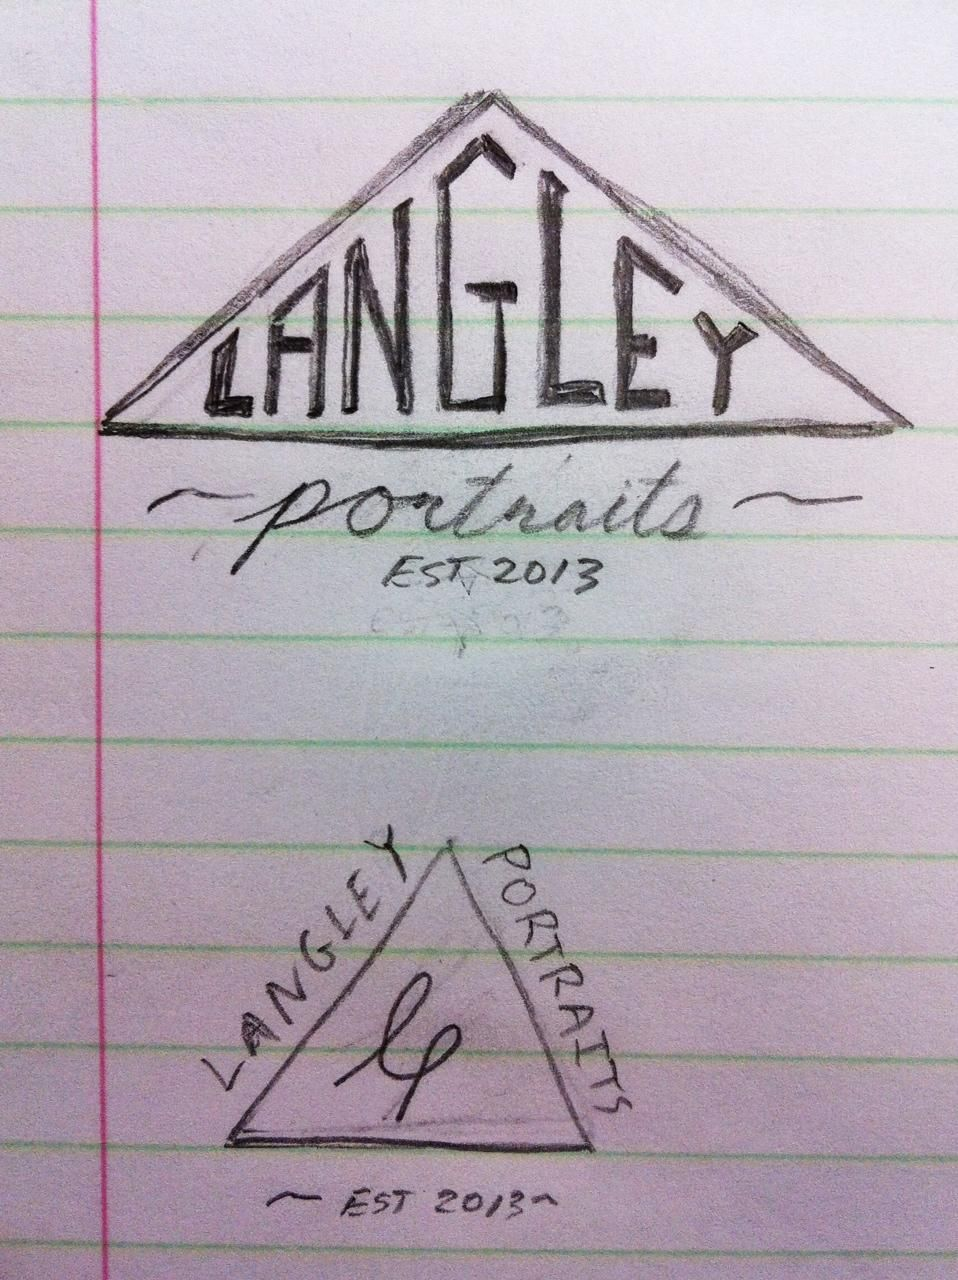 Langley Portraits - image 8 - student project